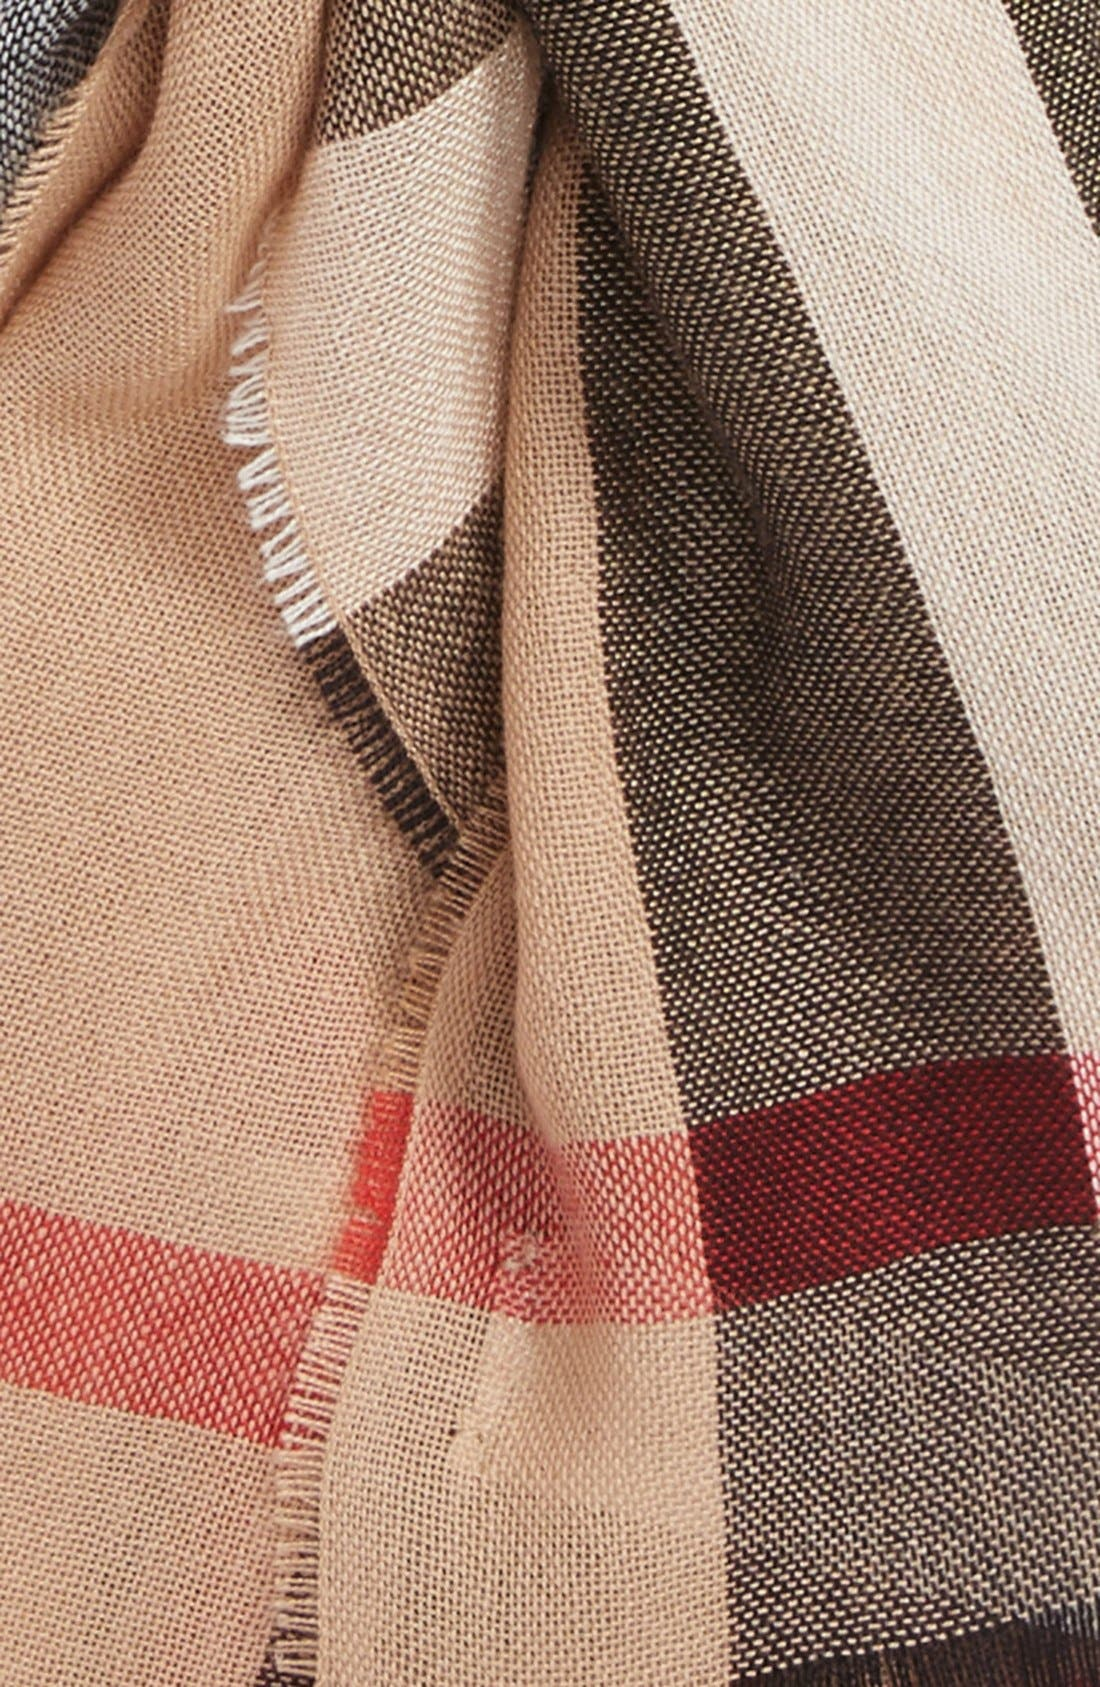 Check Wool & Cashmere Scarf,                             Alternate thumbnail 3, color,                             Camel